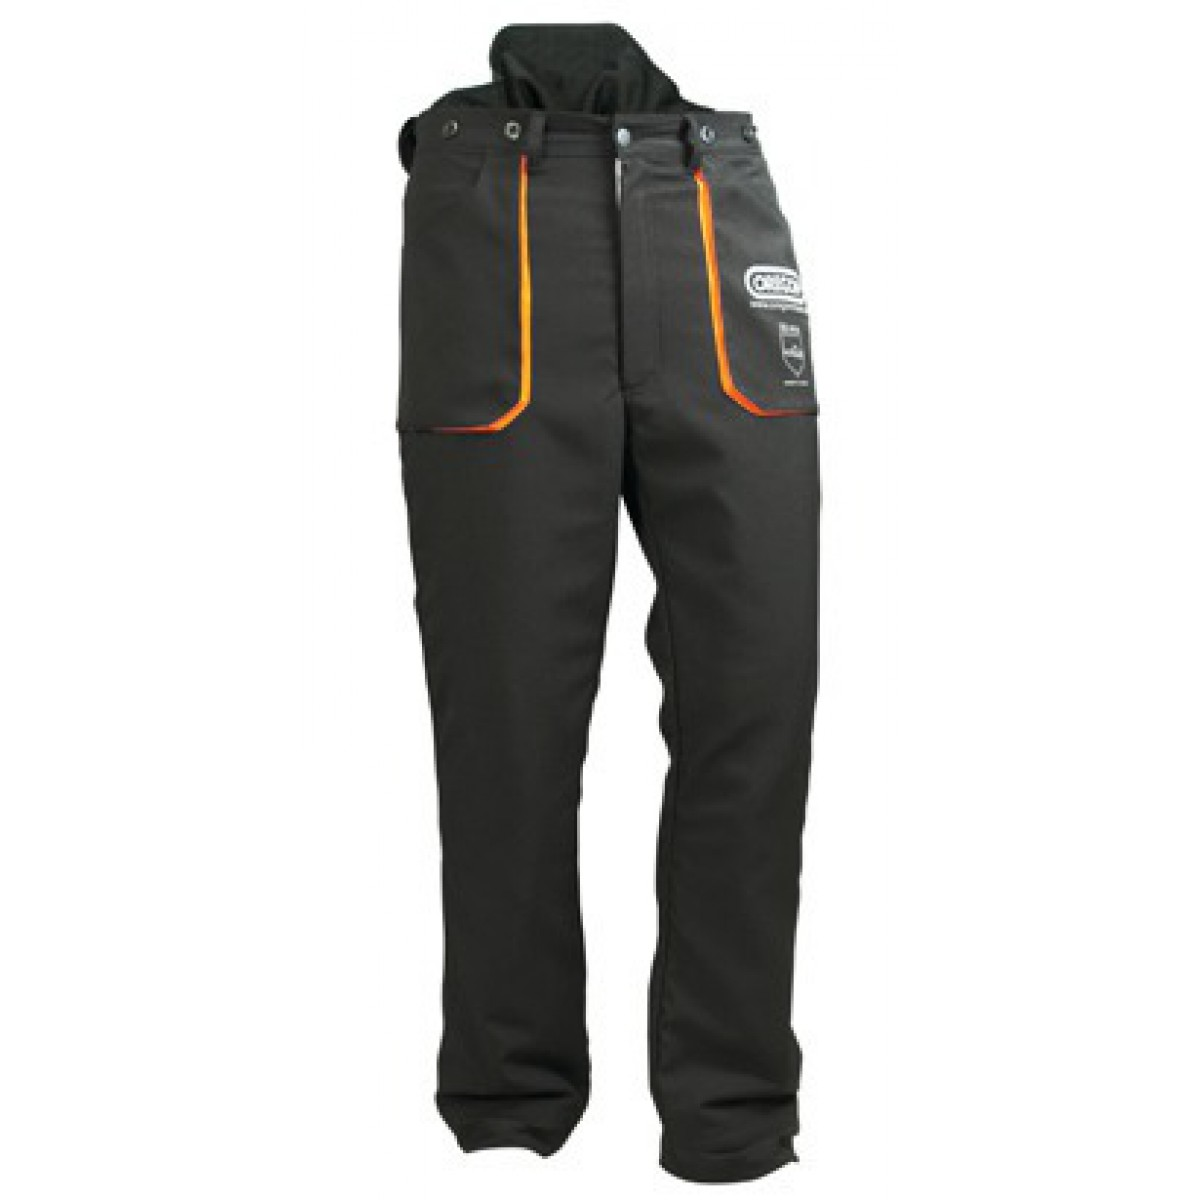 Pantalon de protection Yukon® Oregon - Taille XL